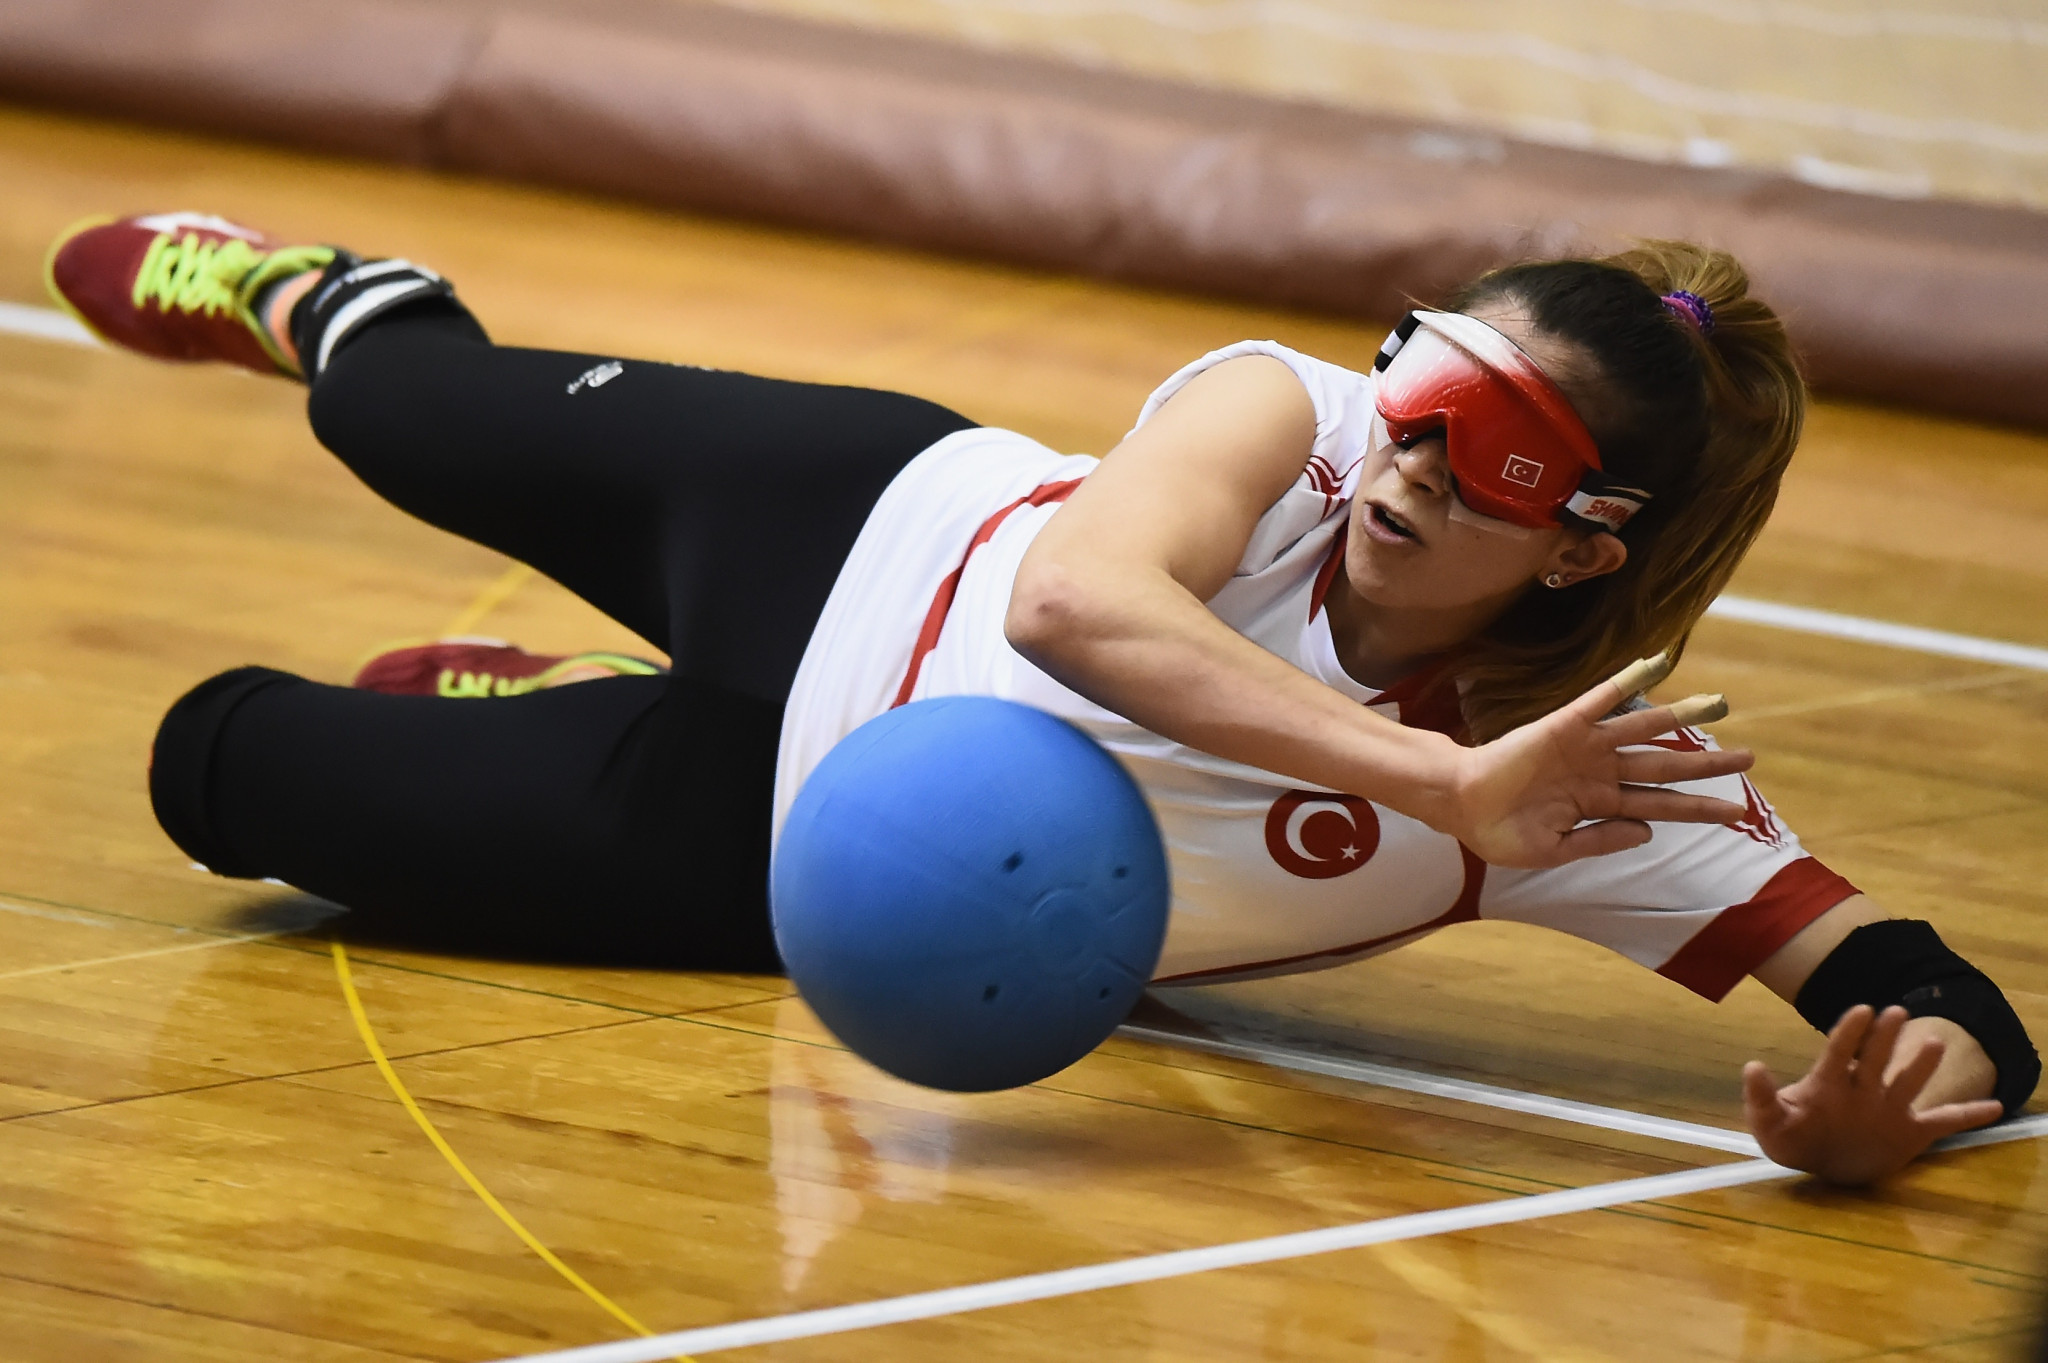 World Goalball Day aiming to capitalise on new interest gained from Tokyo 2020